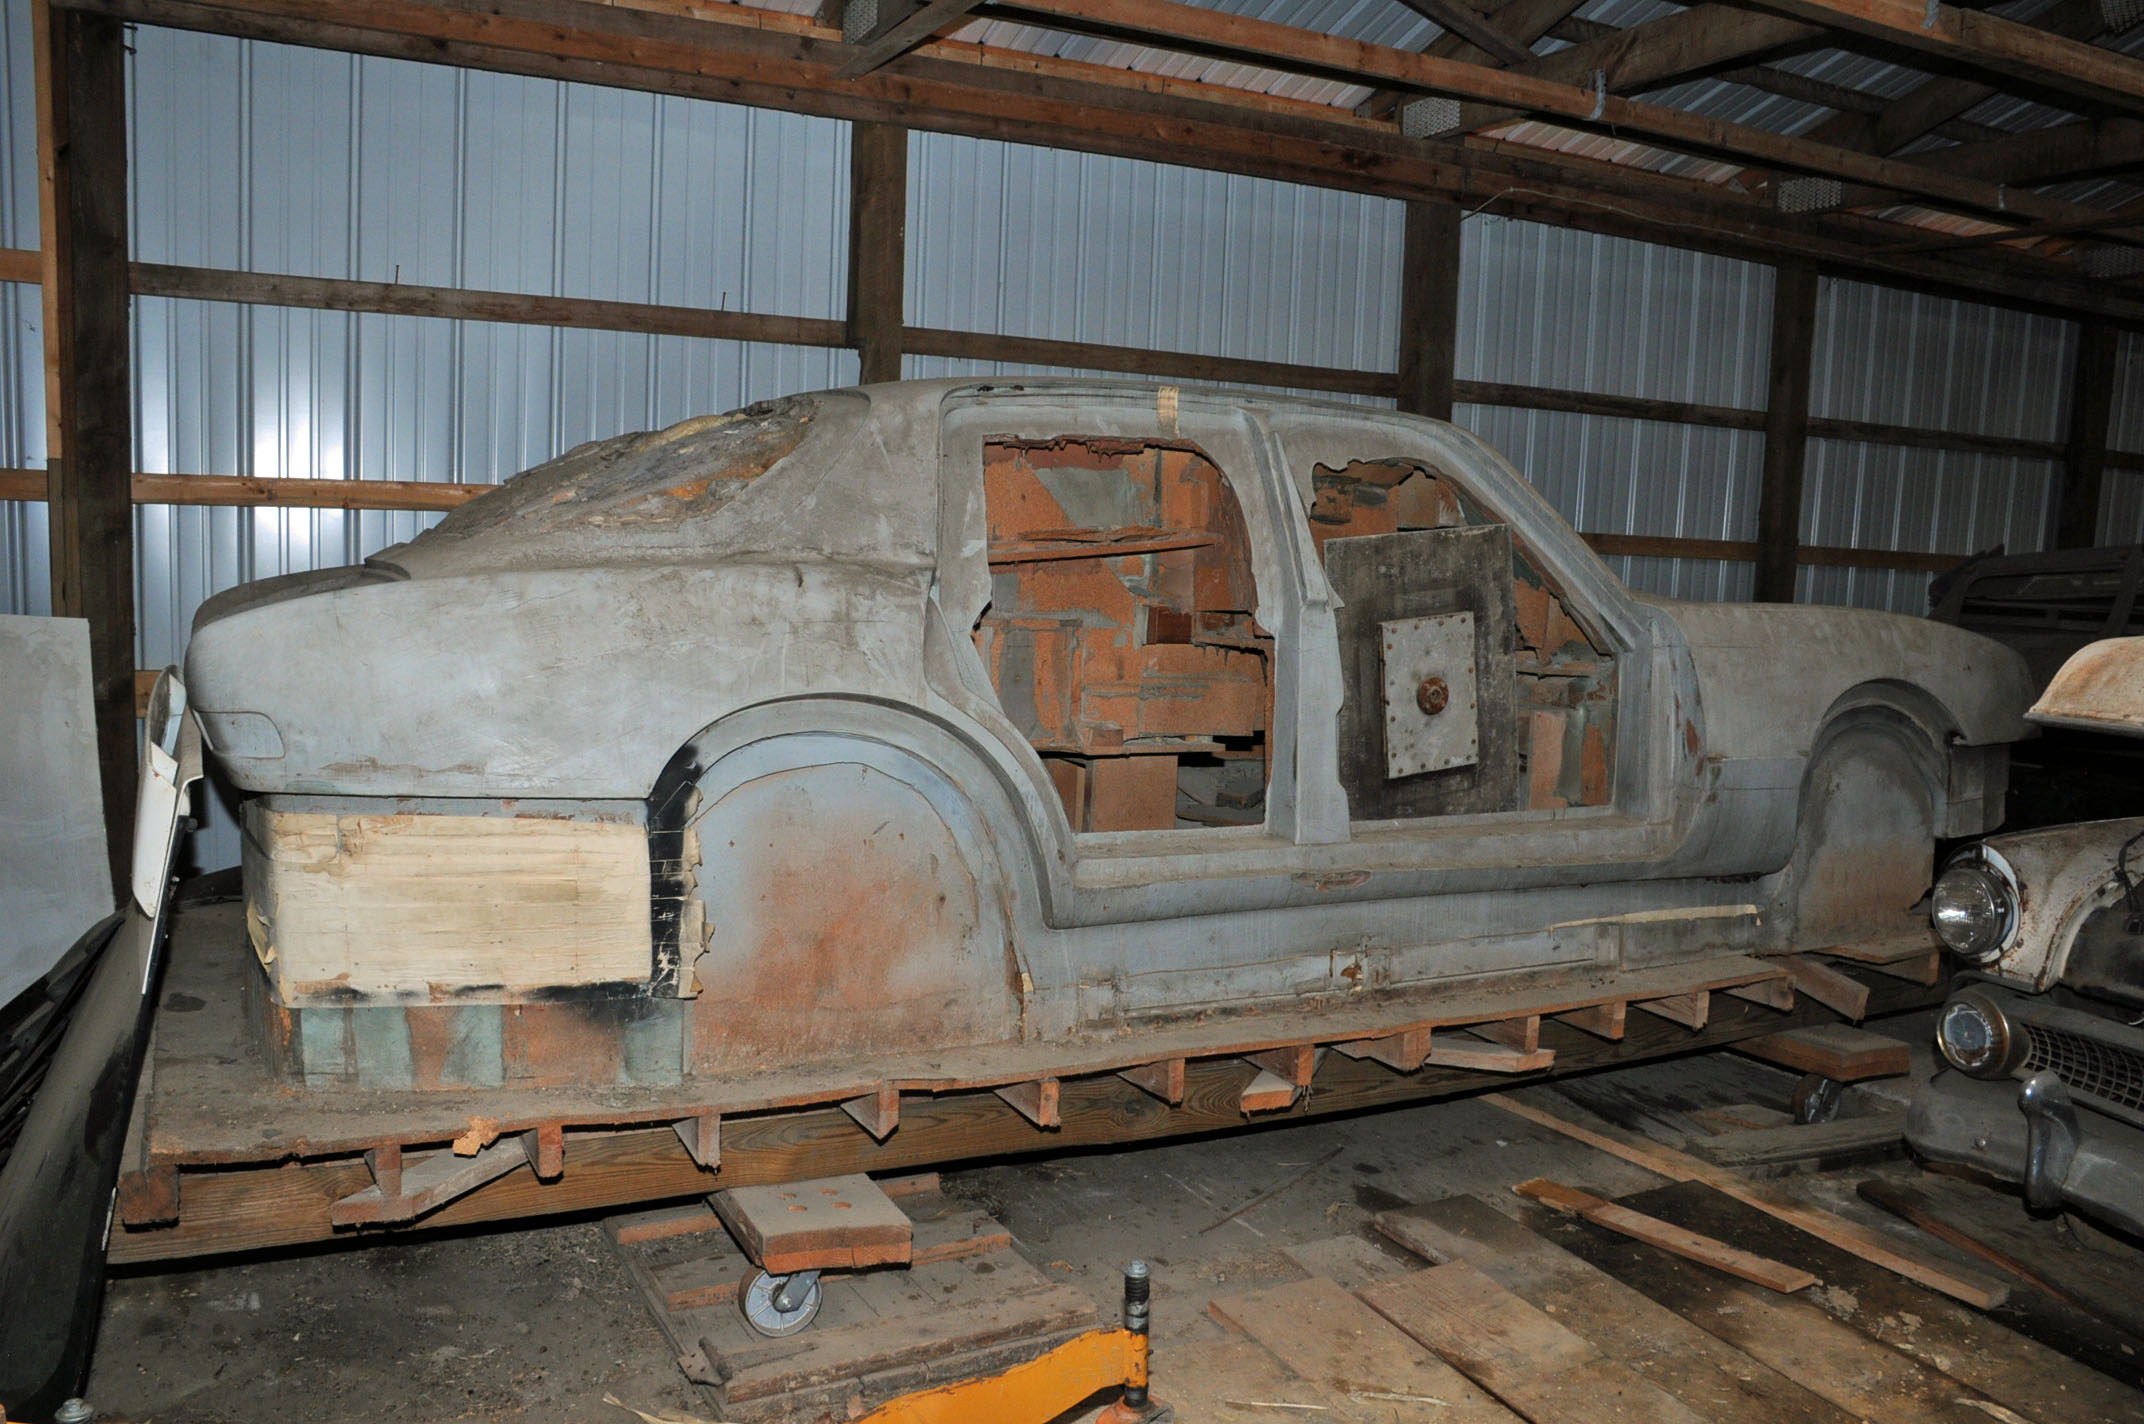 33V alt vanderbrink virgil marple studebaker auction